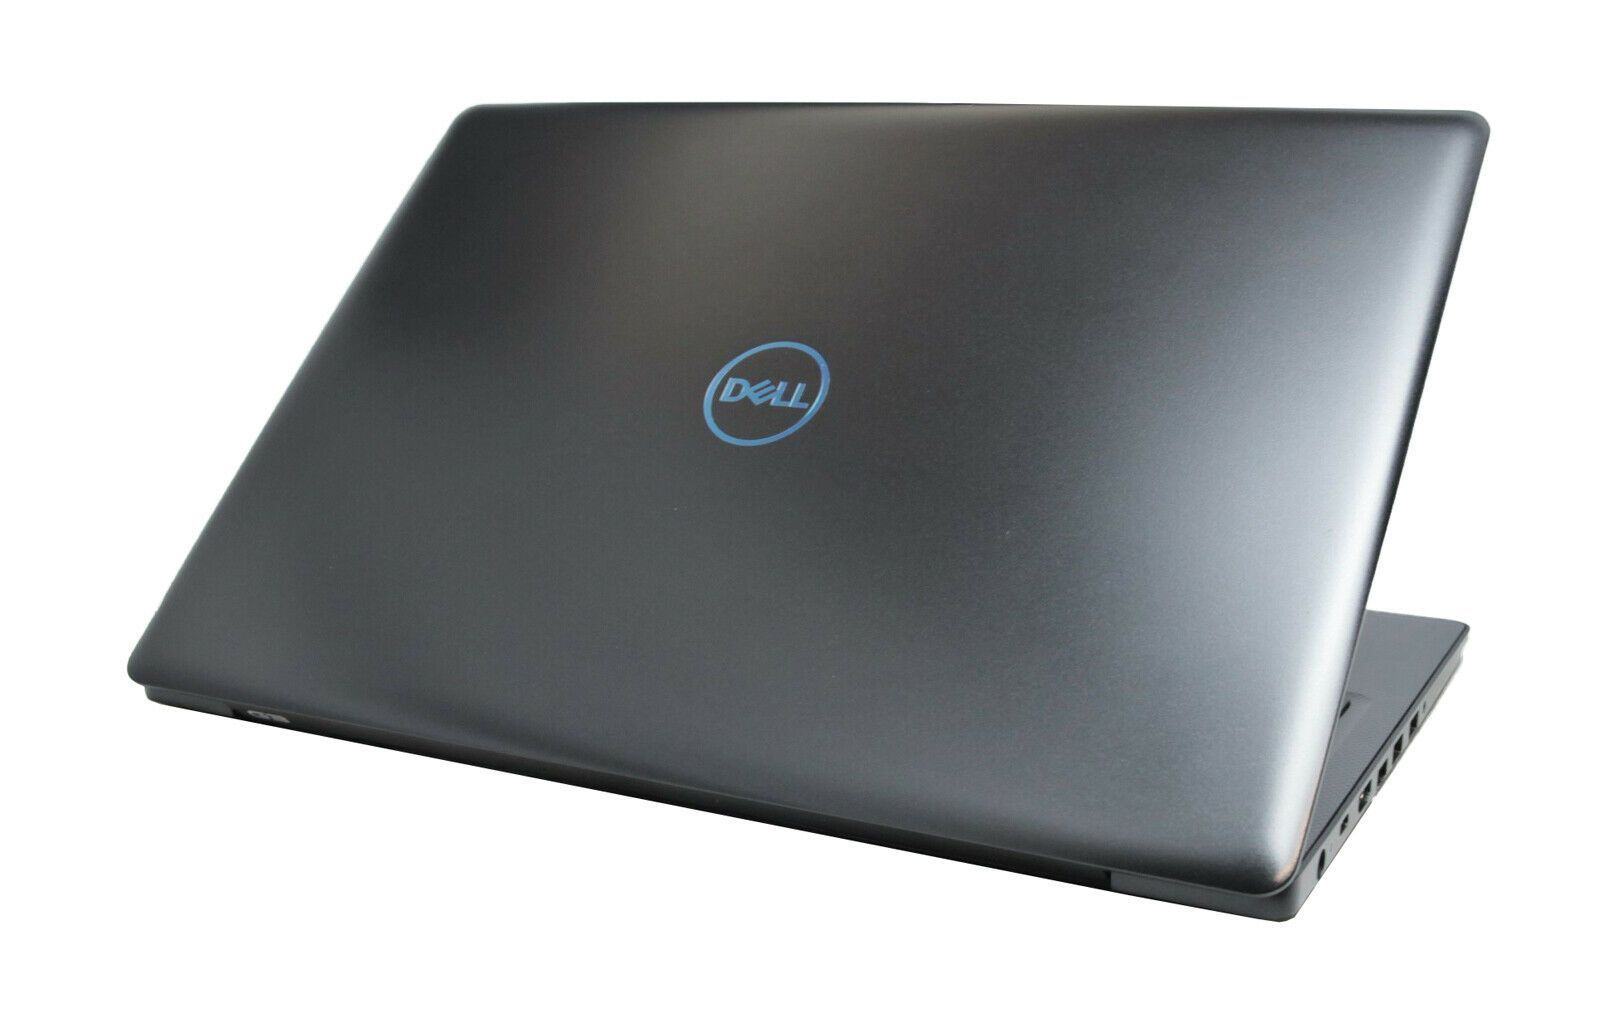 Dell G3 15 IPS Gaming Laptop: Core i7-8750H, GTX 1060 Max-Q, 256GB+1TB, 16GB RAM - CruiseTech